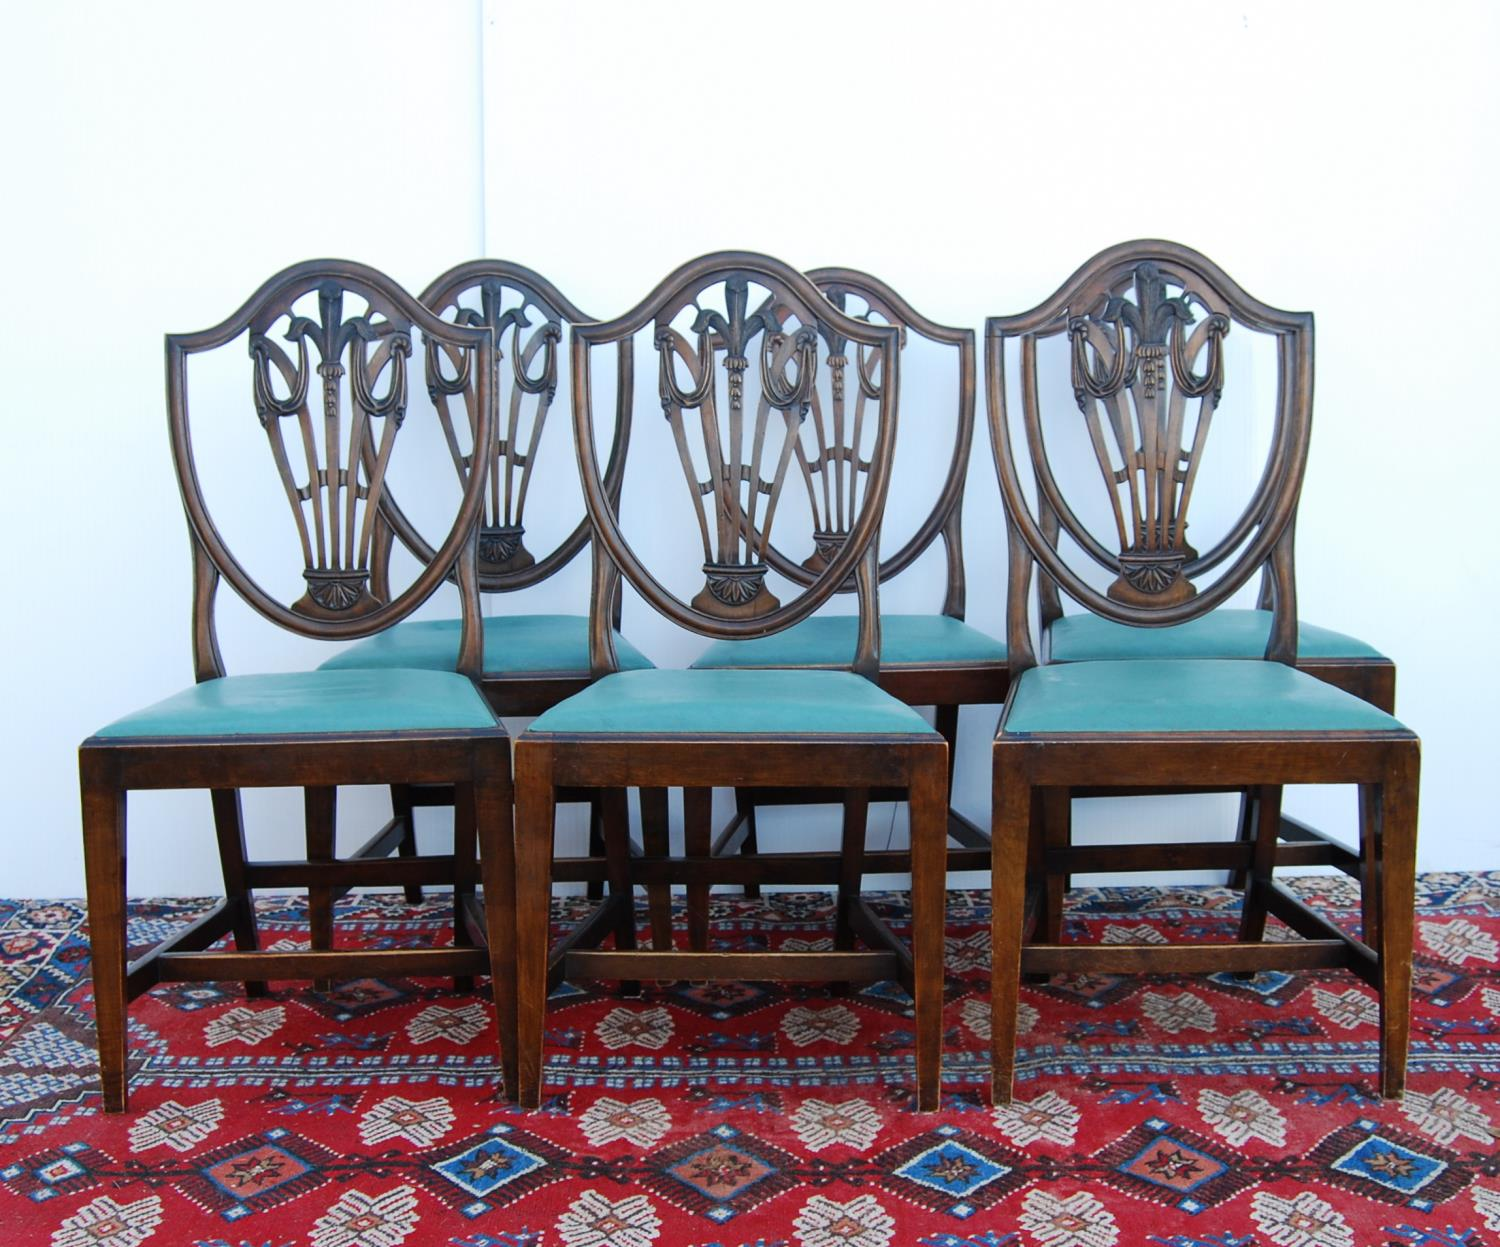 Set of mahogany dining chairs of George III design, each with moulded shield-shaped back, with - Image 3 of 3